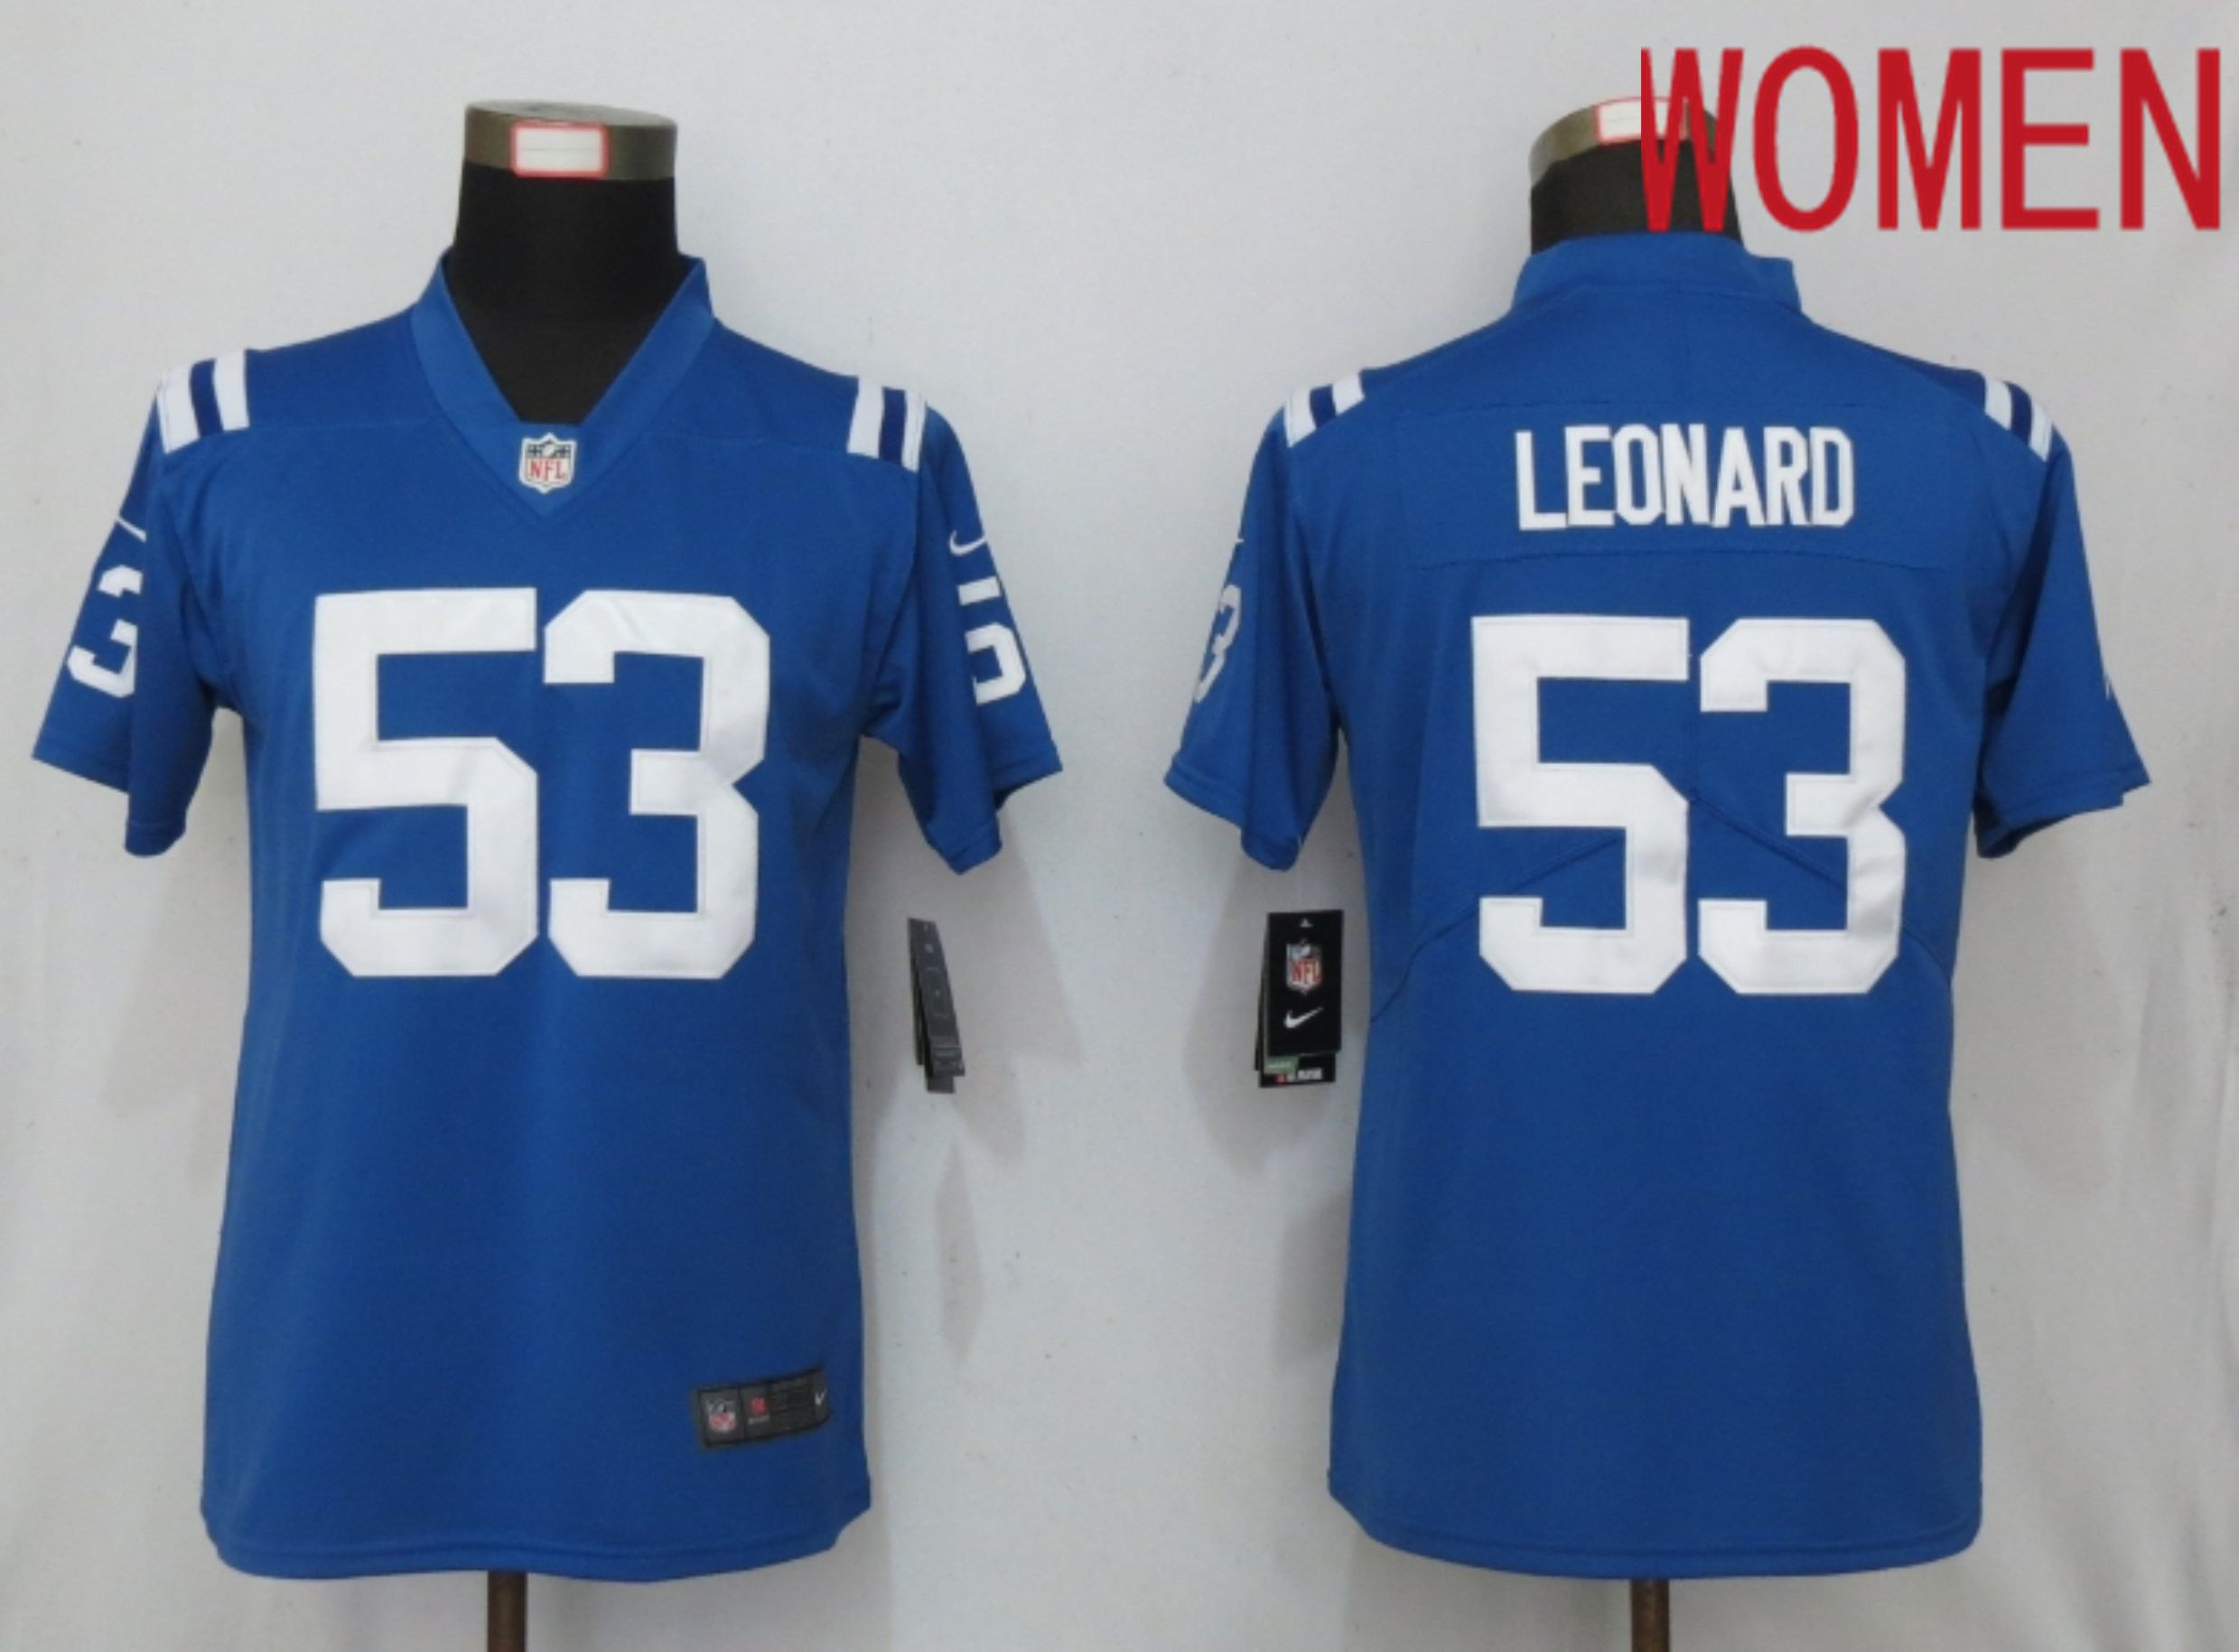 Women Indianapolis Colts 53 Leonard Blue Nike Vapor Untouchable Playe NFL Jerseys